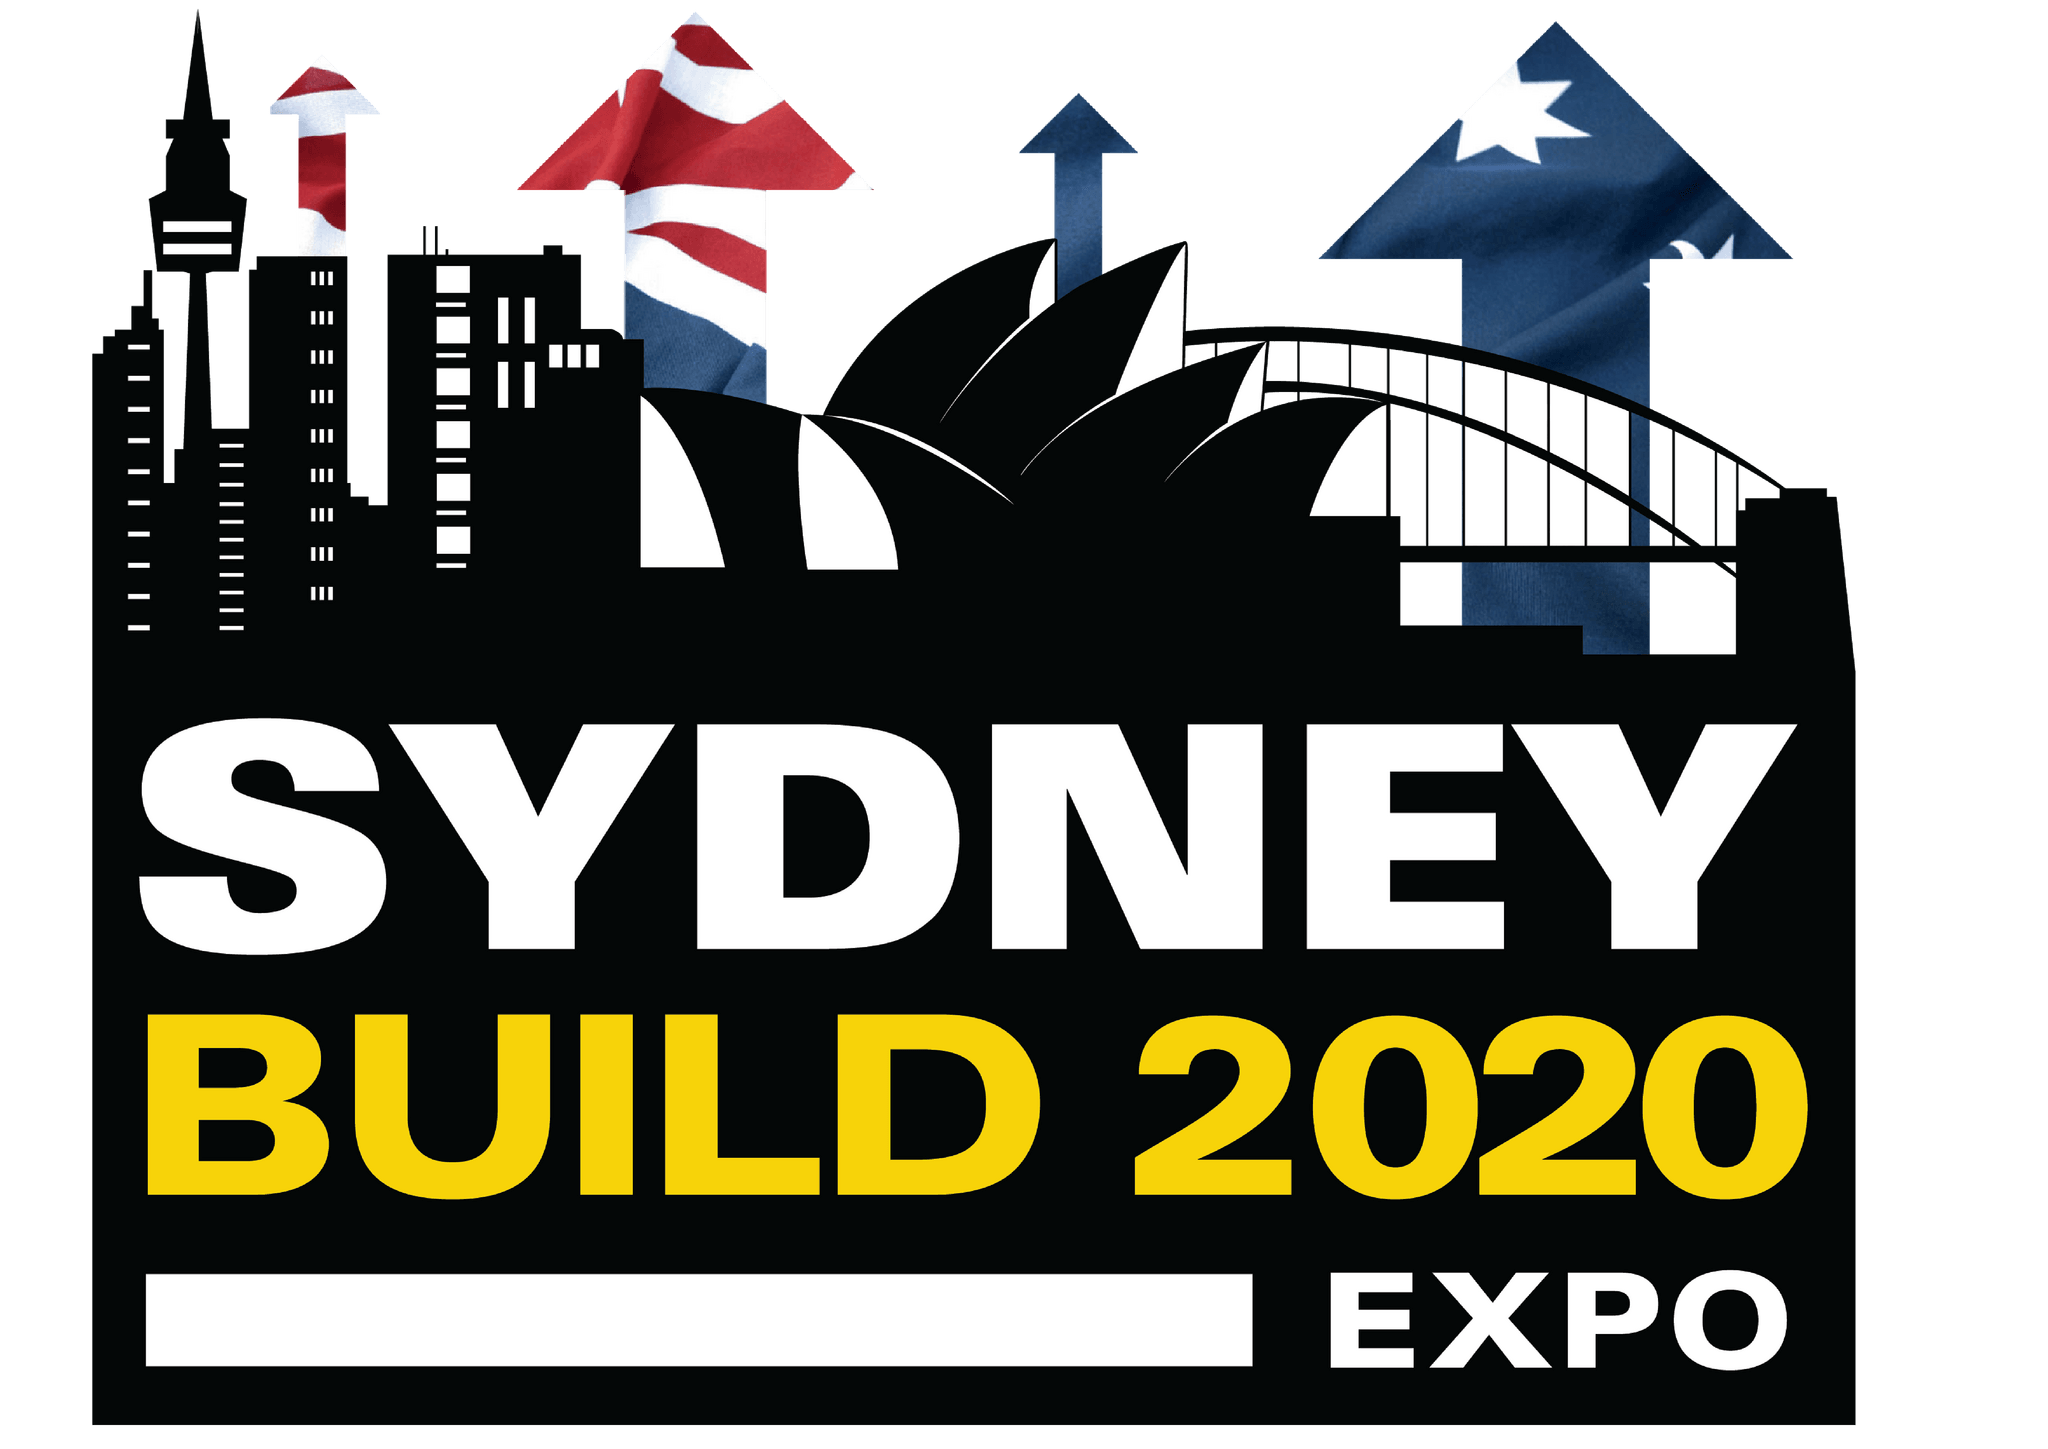 Sydney Build Expo - Construction, Infrastructure, Transport and